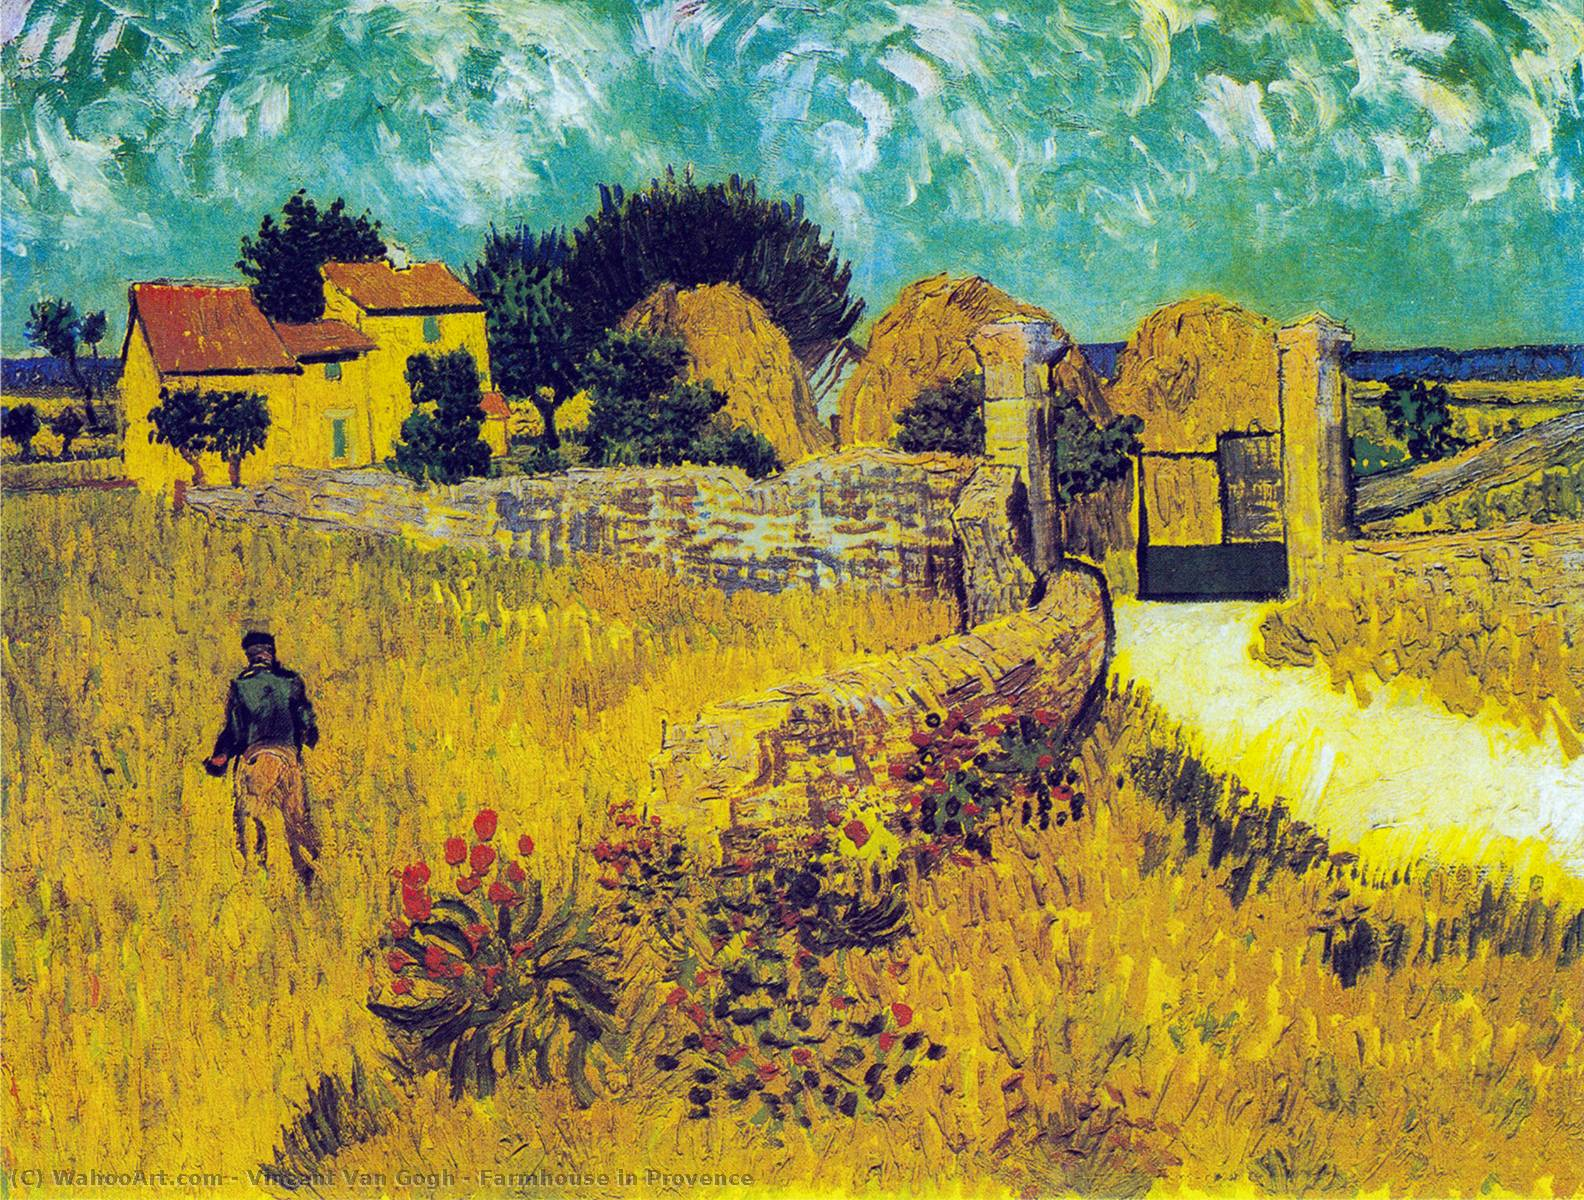 Farmhouse in Provence, Oil On Canvas by Vincent Van Gogh (1853-1890, Netherlands)